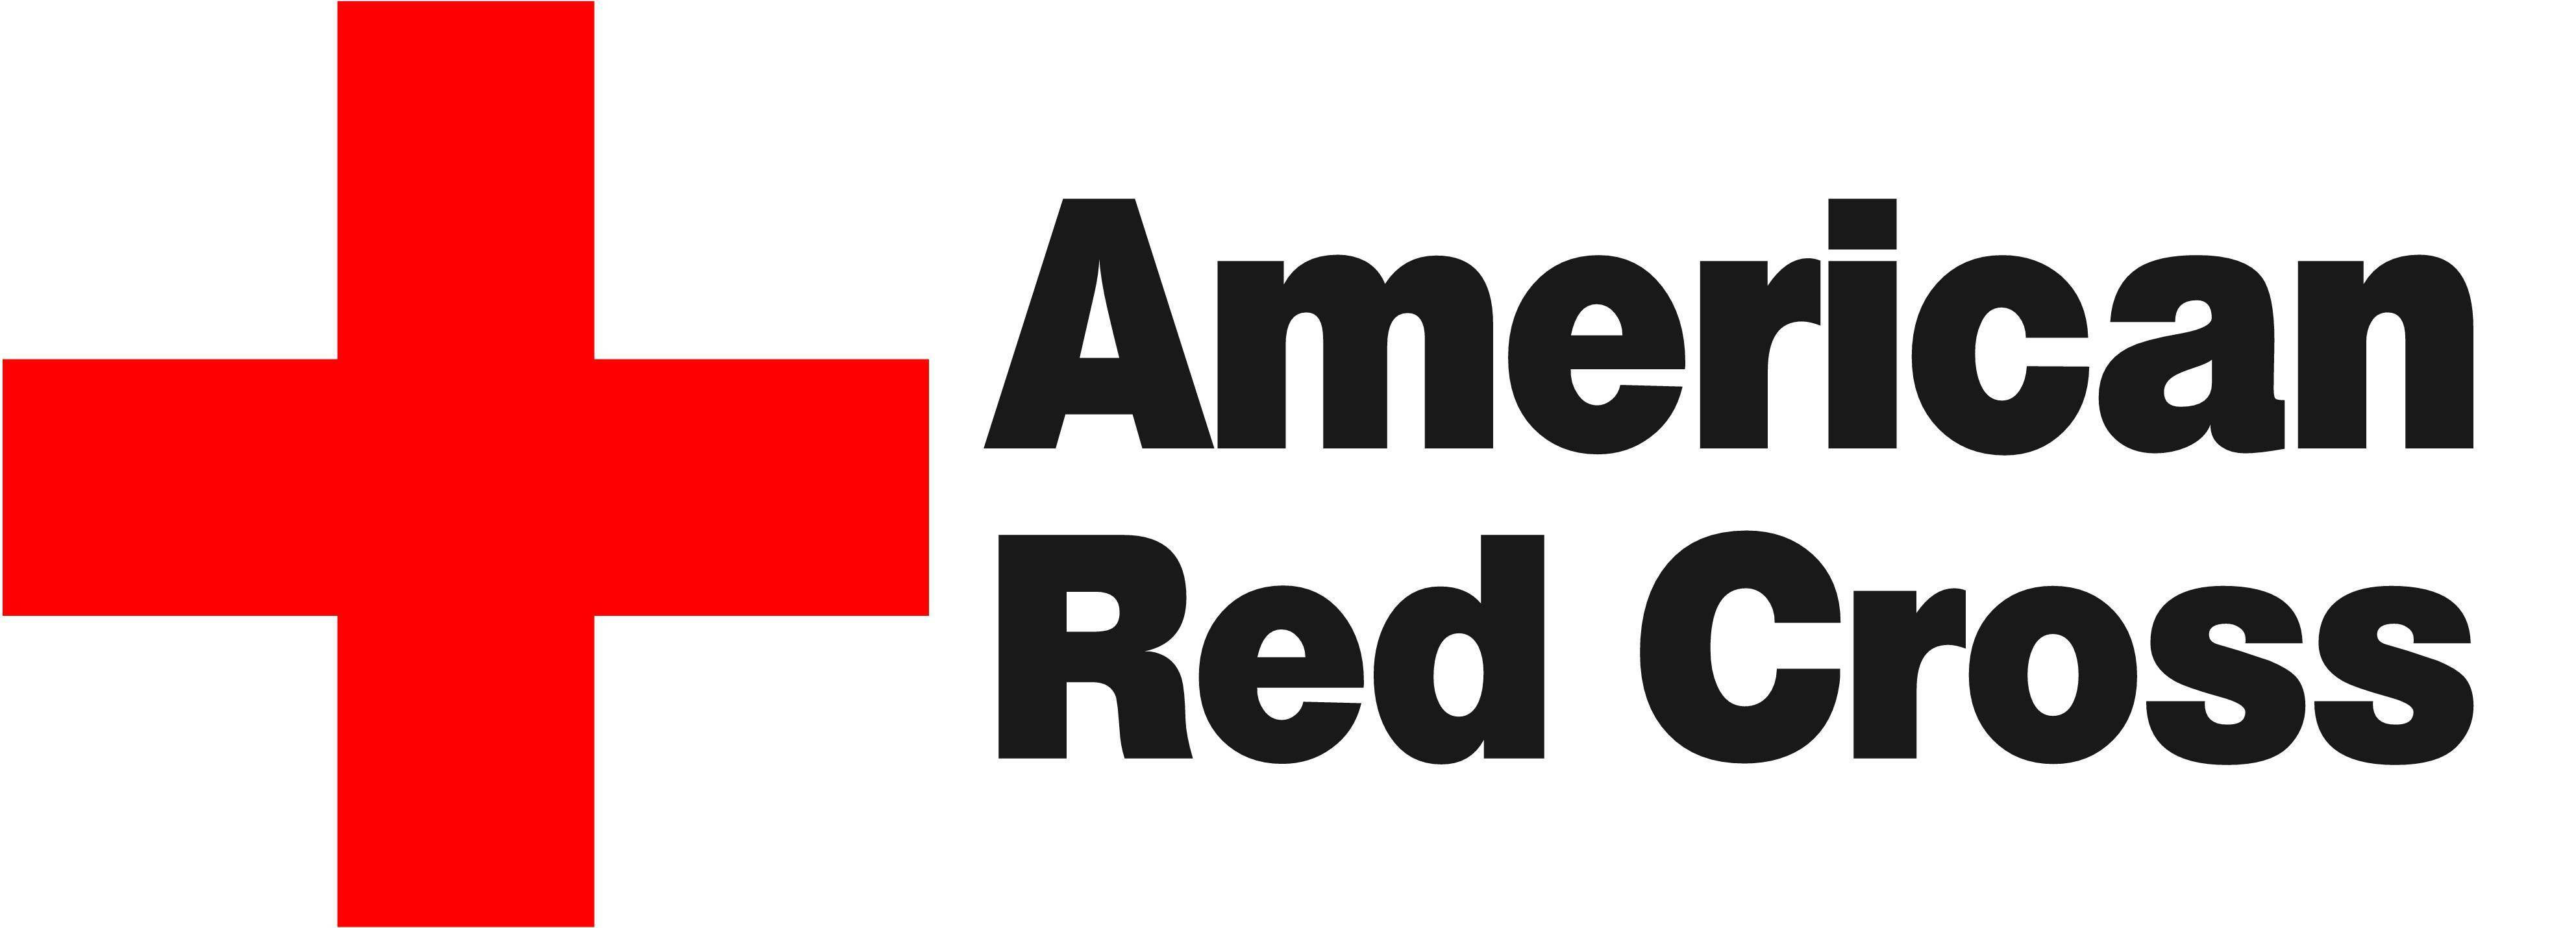 red cross offers tips for a fun and safe fourth of july greater